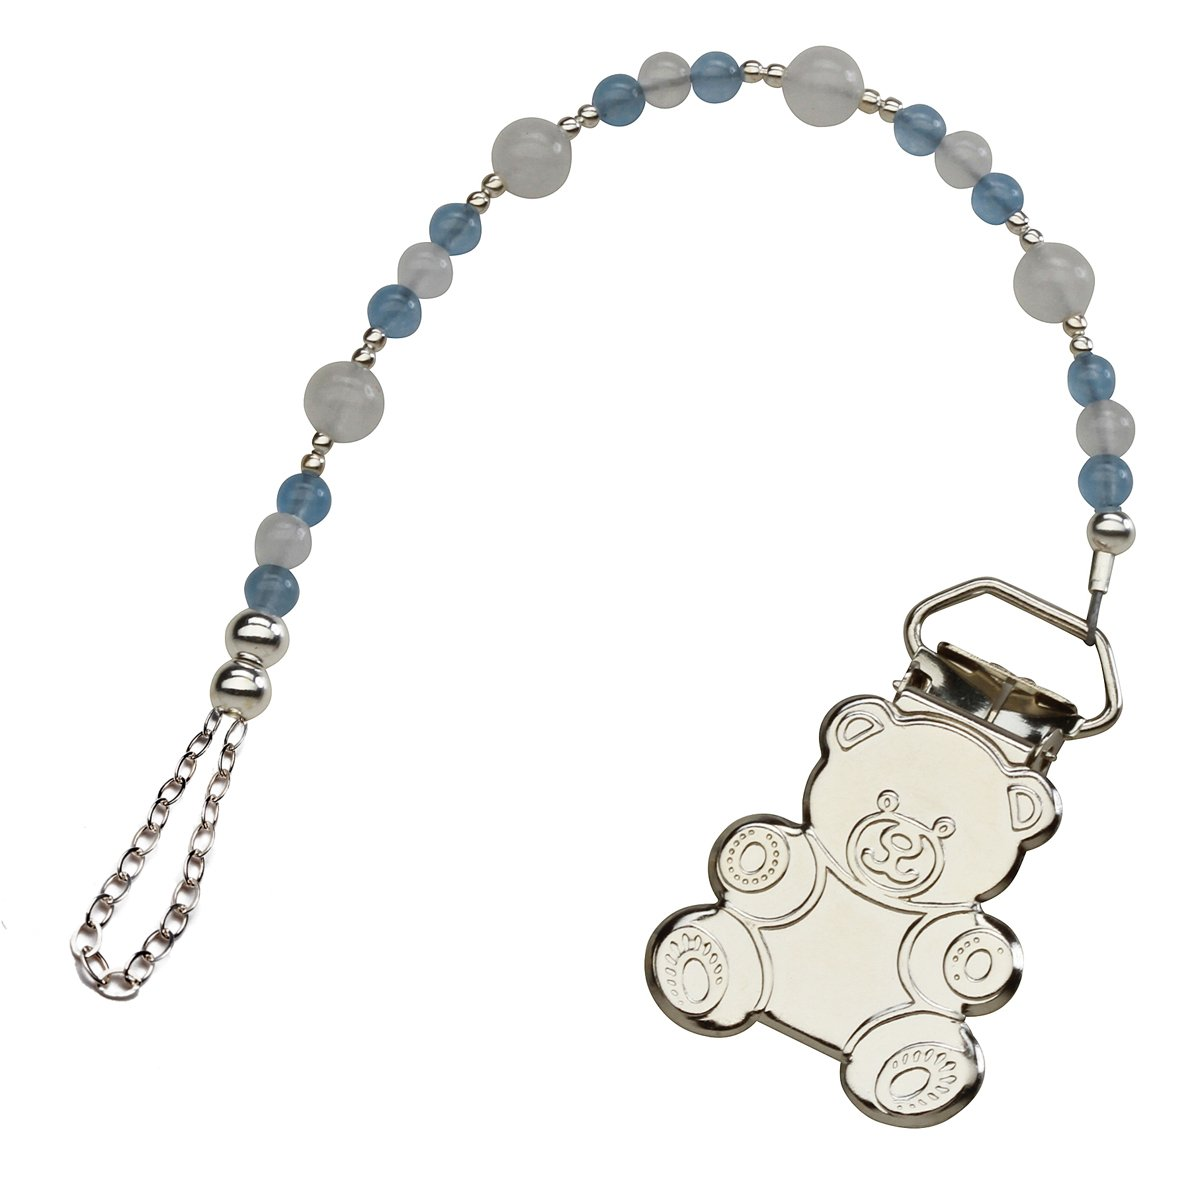 Sterling Silver Teddy Bear Binky or Pacifier Clip in Powder Blue and White (Clip is Base Metal) by Precious Pieces